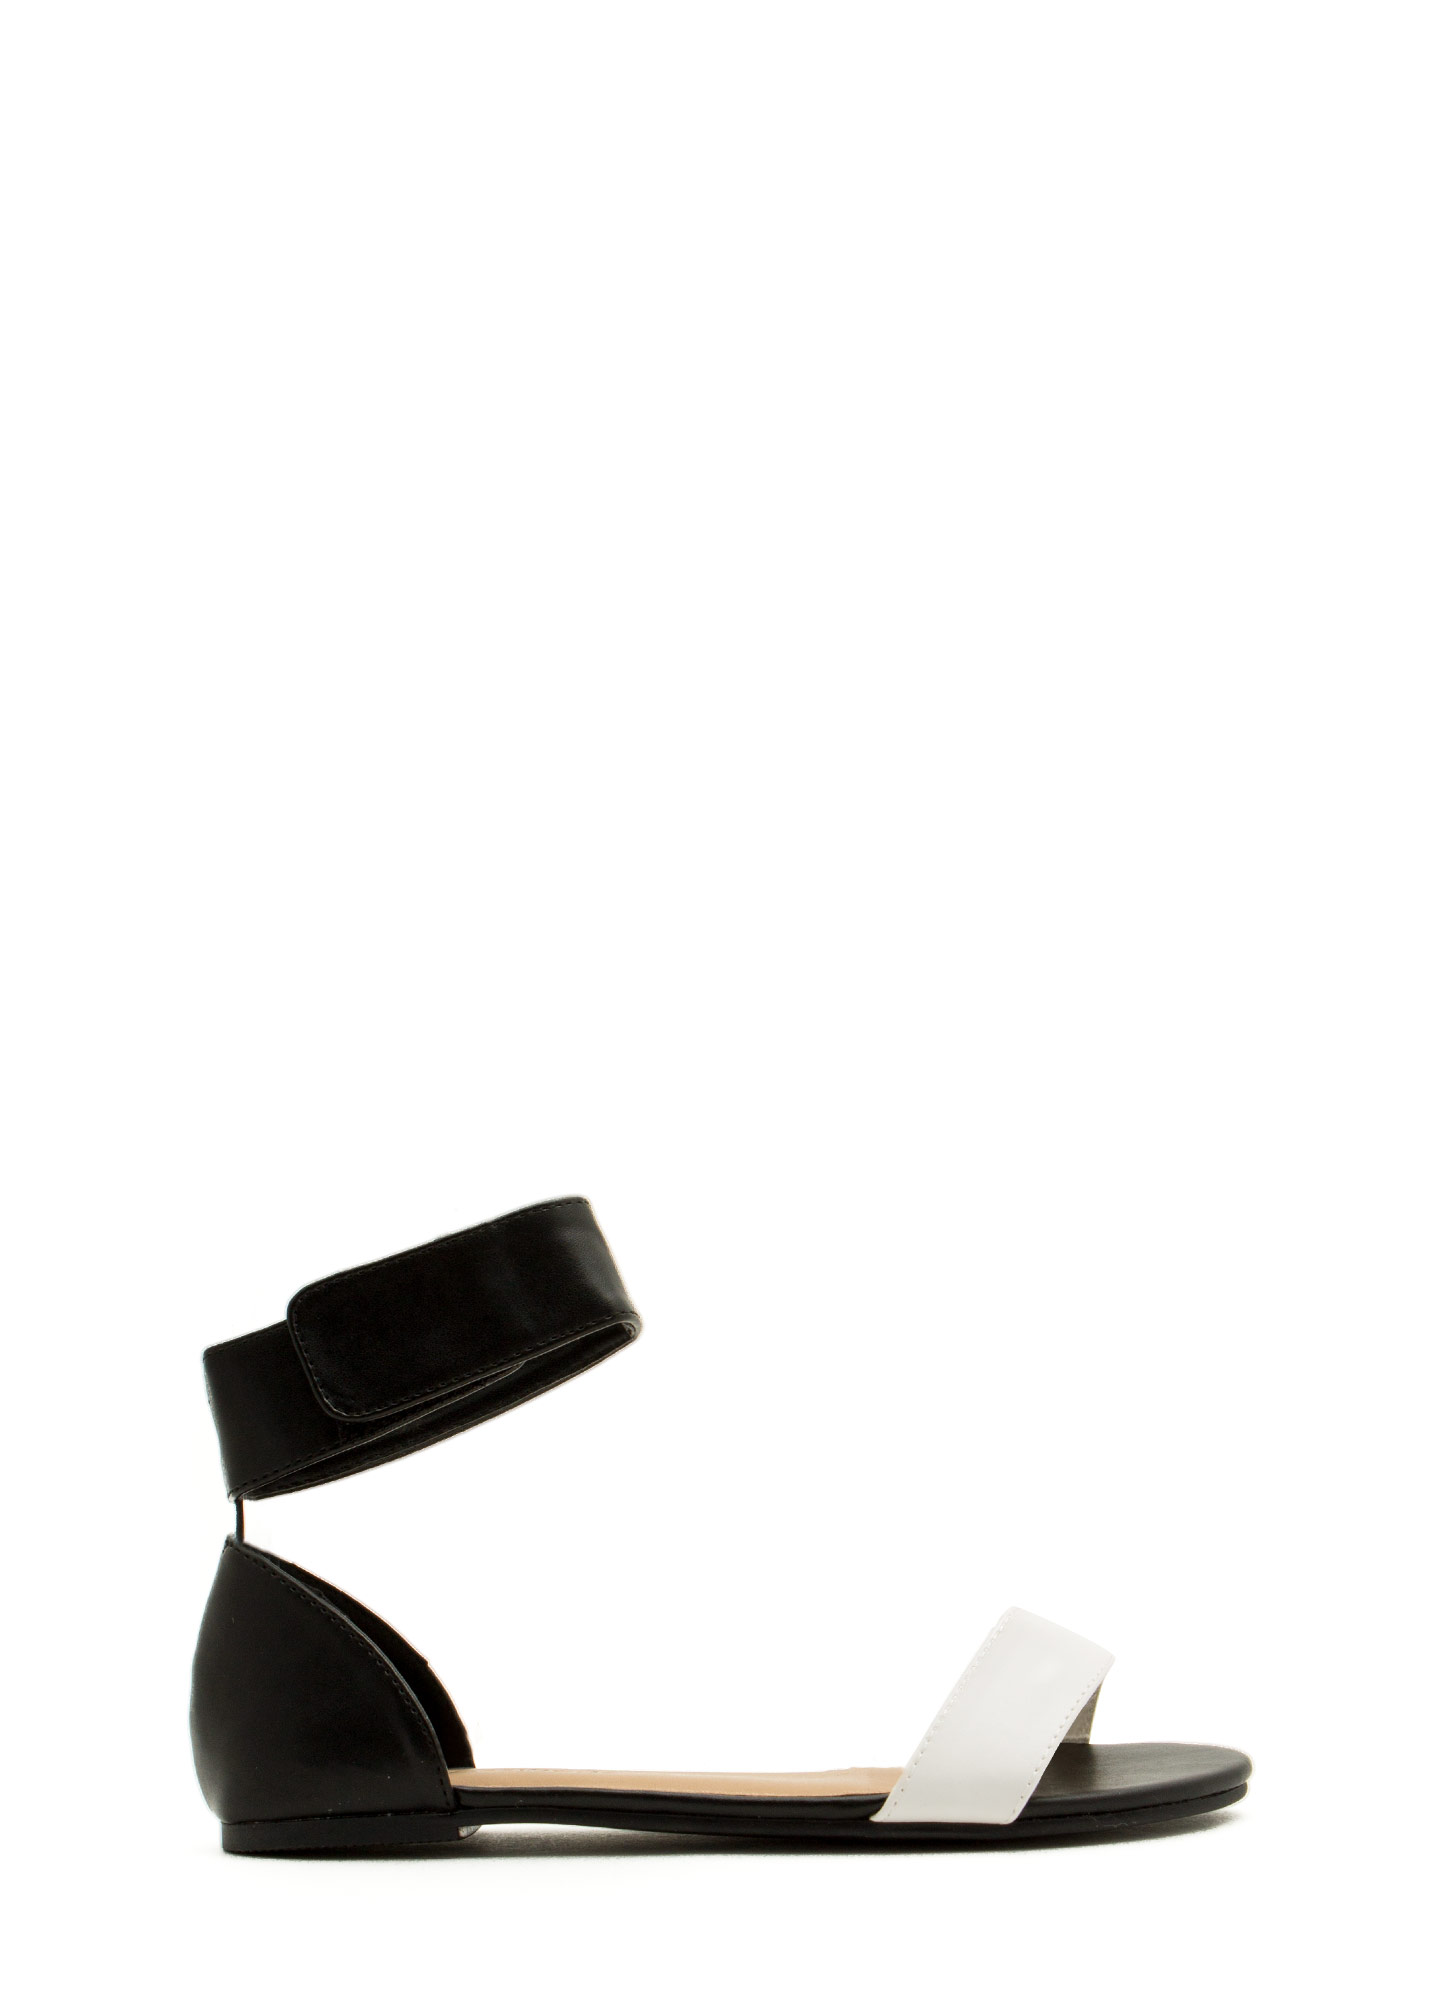 Ready To Mingle Single-Strap Sandals WHITEBLACK